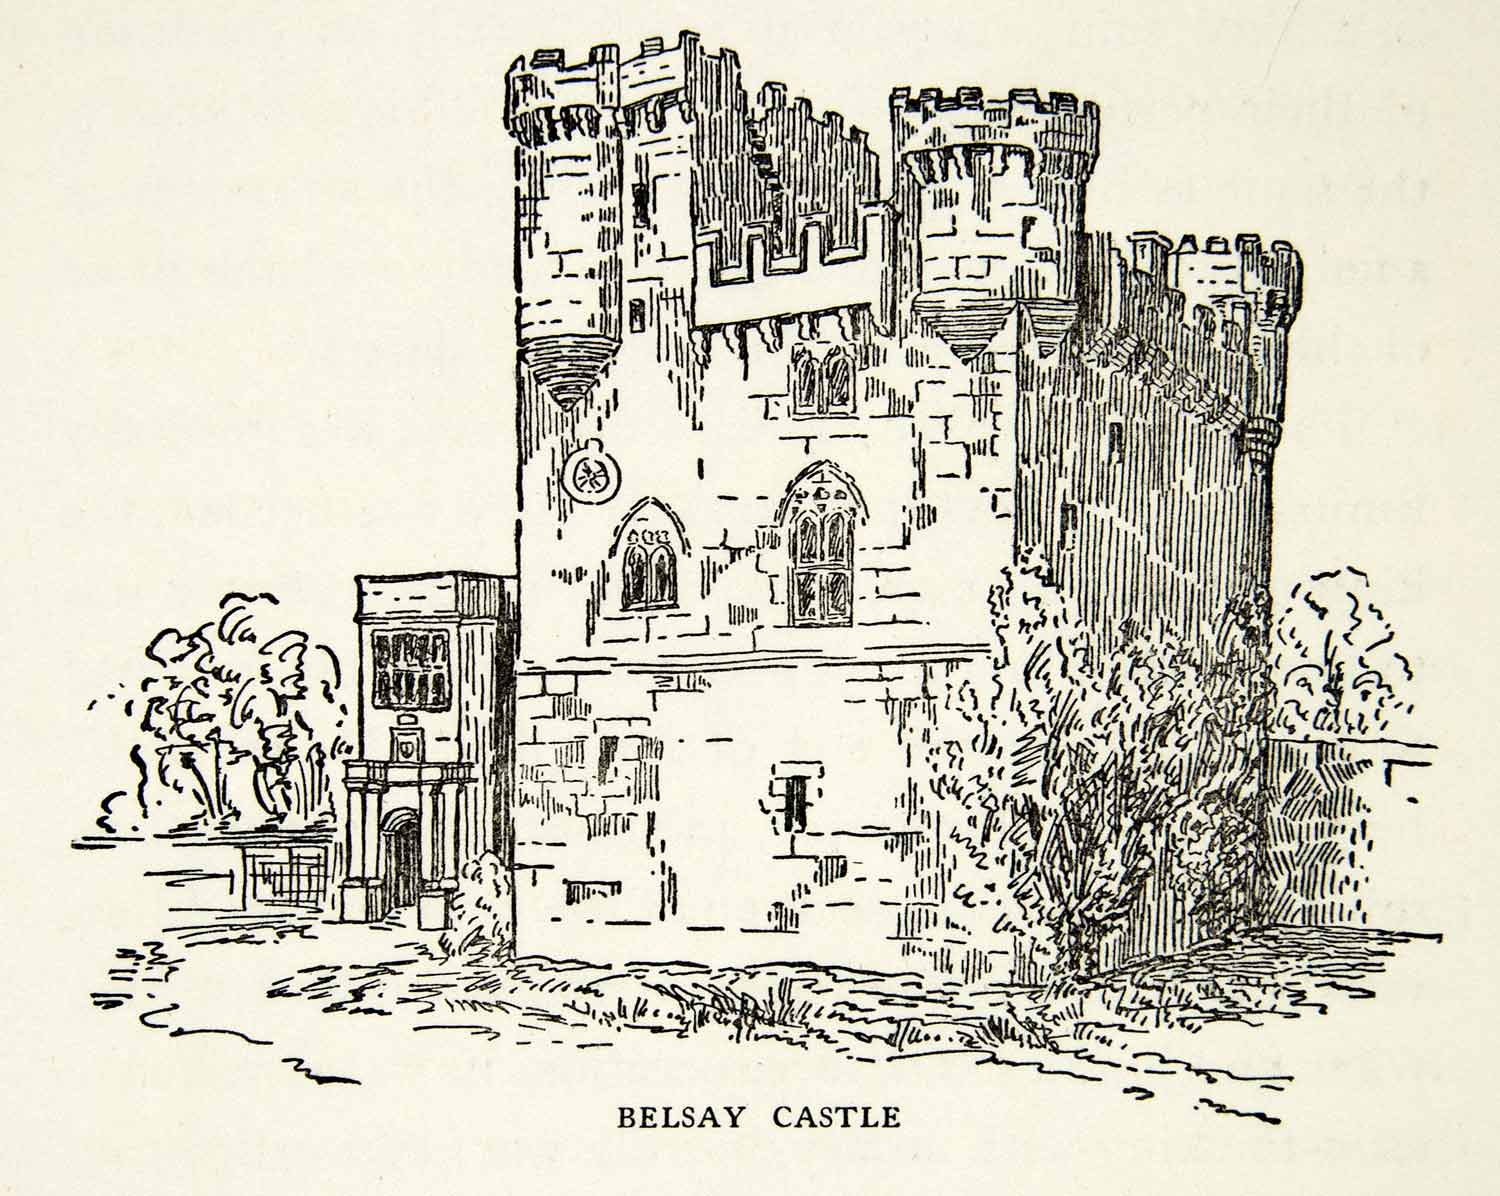 1939 Print Belsay Castle Middle Ages Medieval England Northumberland Pele XEBA4